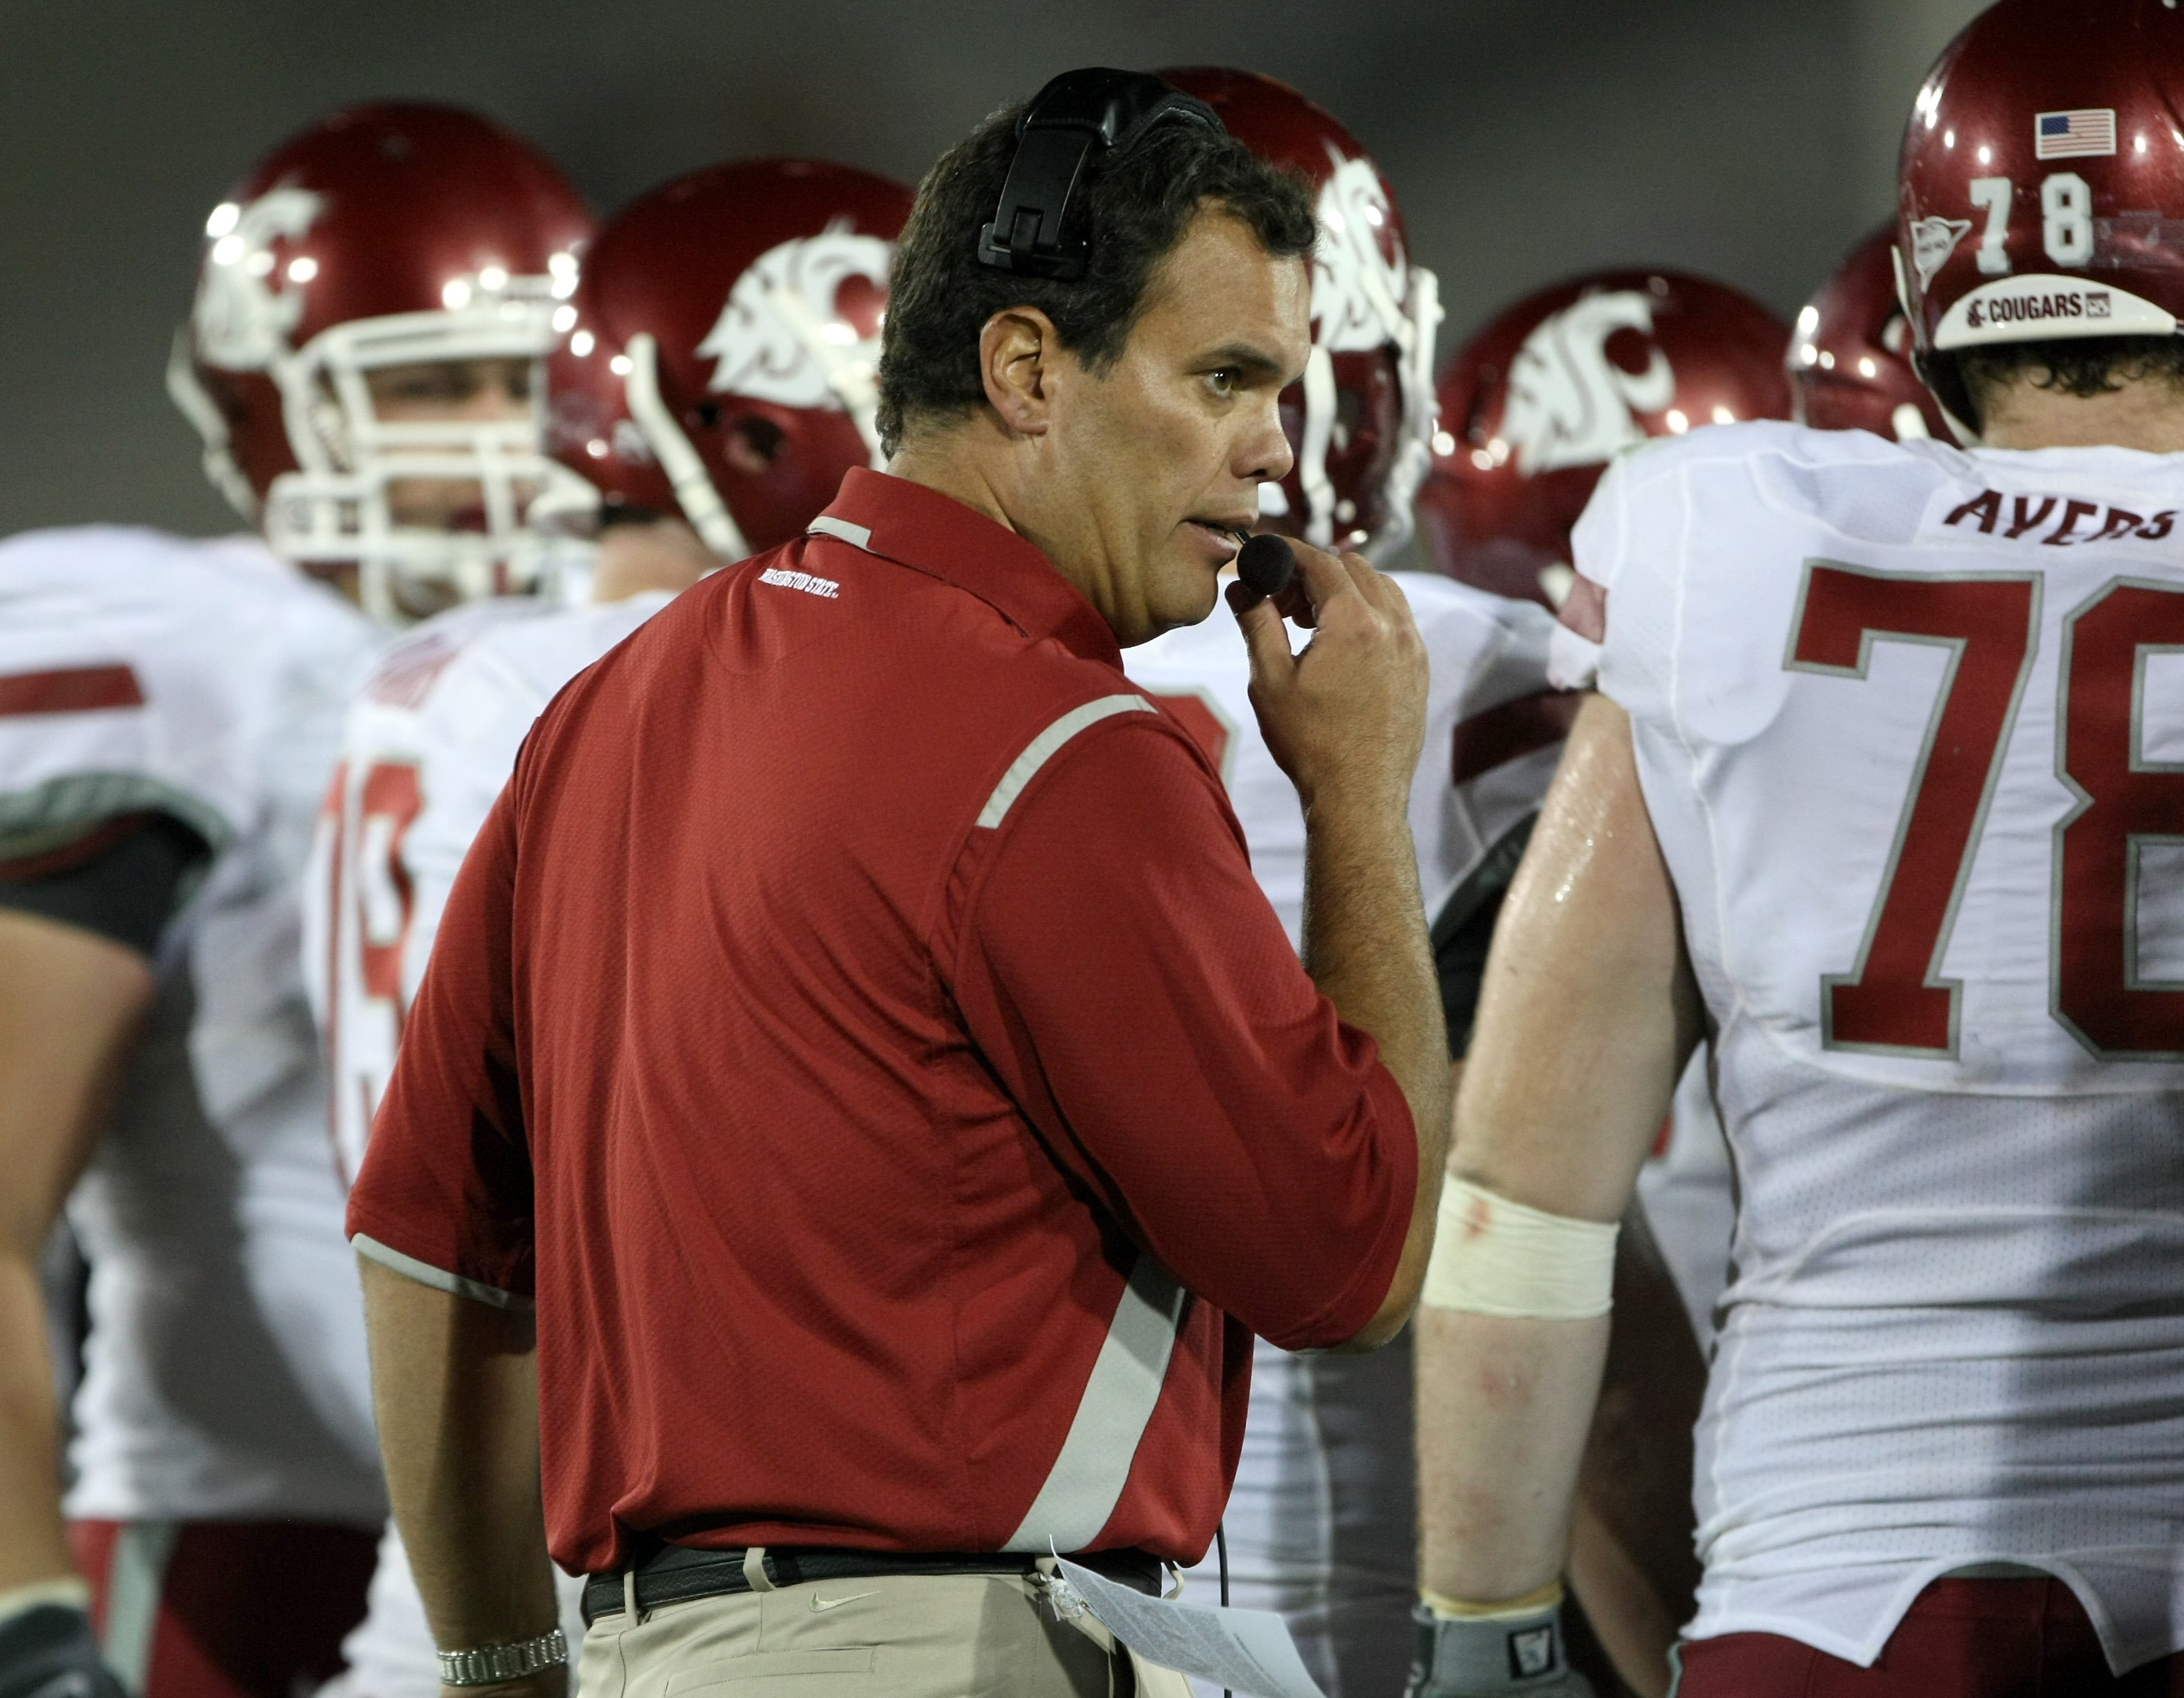 LOS ANGELES, CA - SEPTEMBER 26:  Head coach Paul Wulff of the Washington State Cougars works during the game with the USC Trojans on September 23, 2009 at the Los Angeles Coliseum in Los Angeles, California.  USC won 27-6.  (Photo by Stephen Dunn/Getty Im